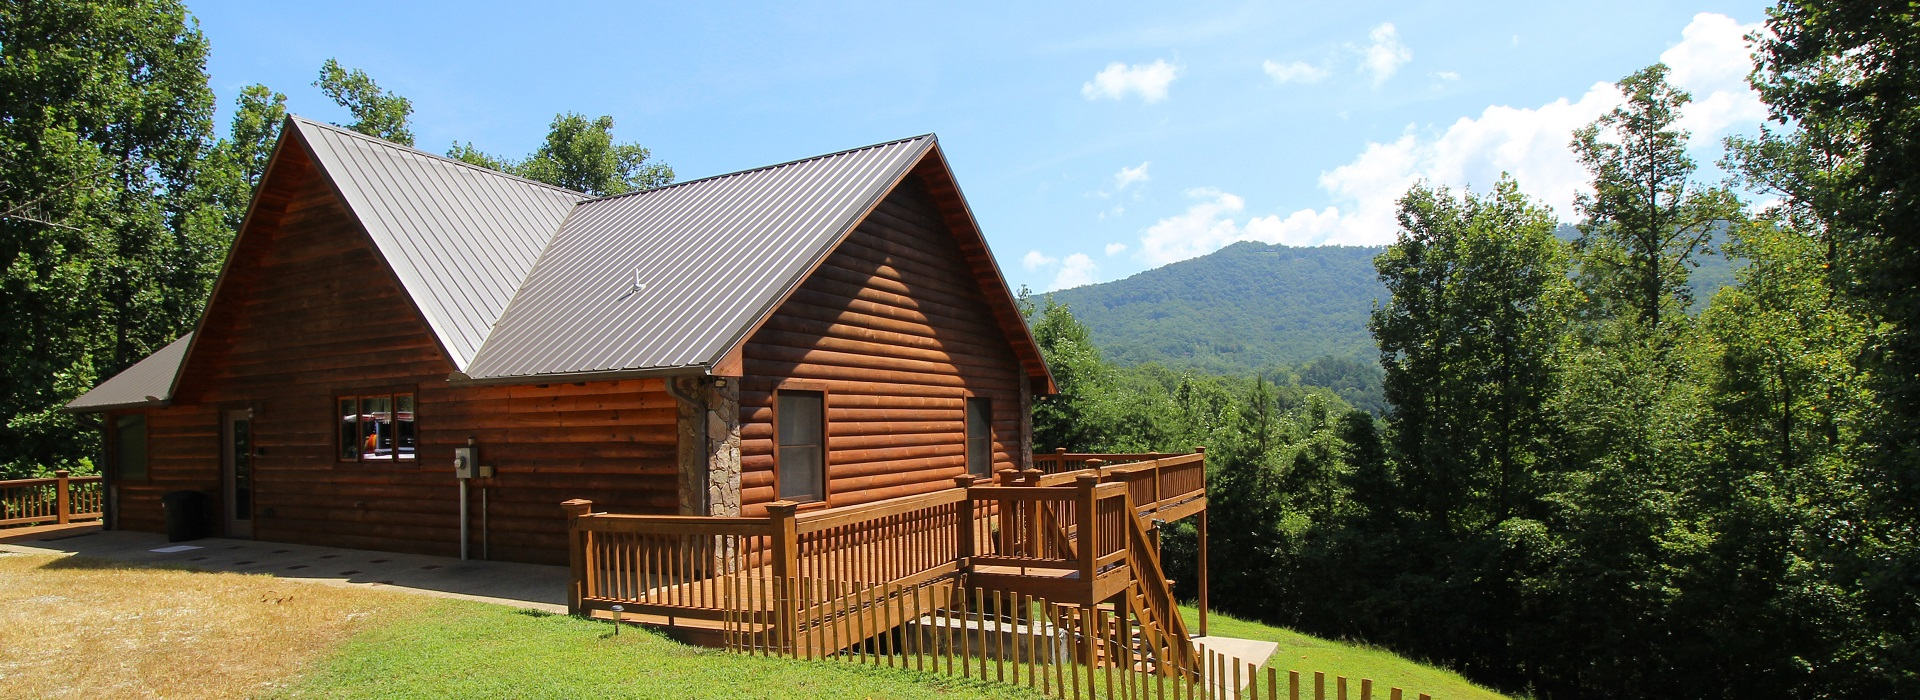 cabins in cabin gatlinburg silvercreek living the elk smokies affordable springs resort